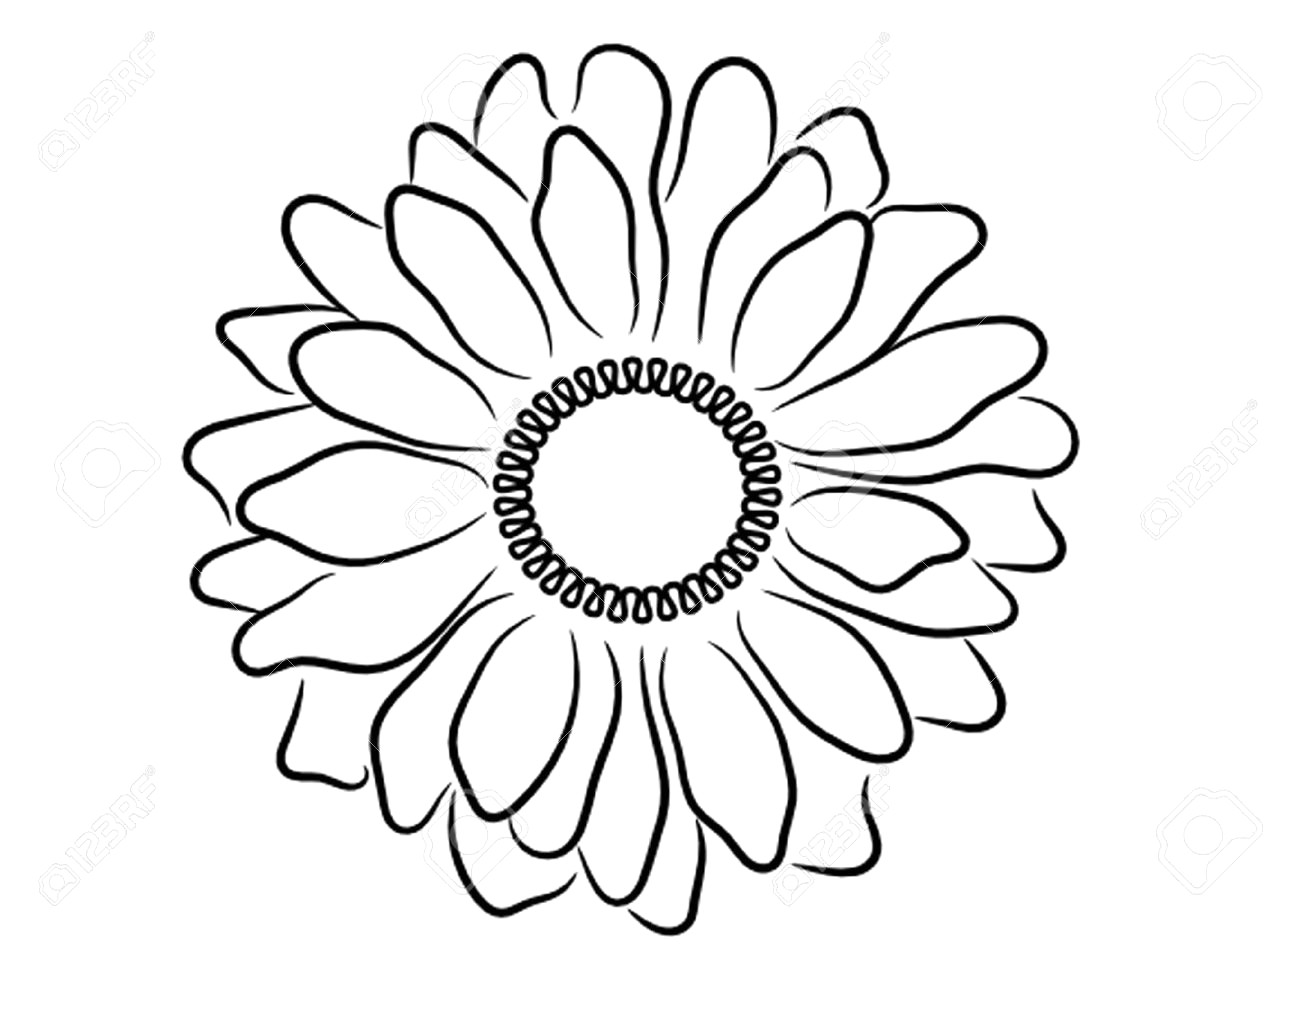 1300x1029 Drawing Of A Daisy Flower Sketch Library Throughout Outline